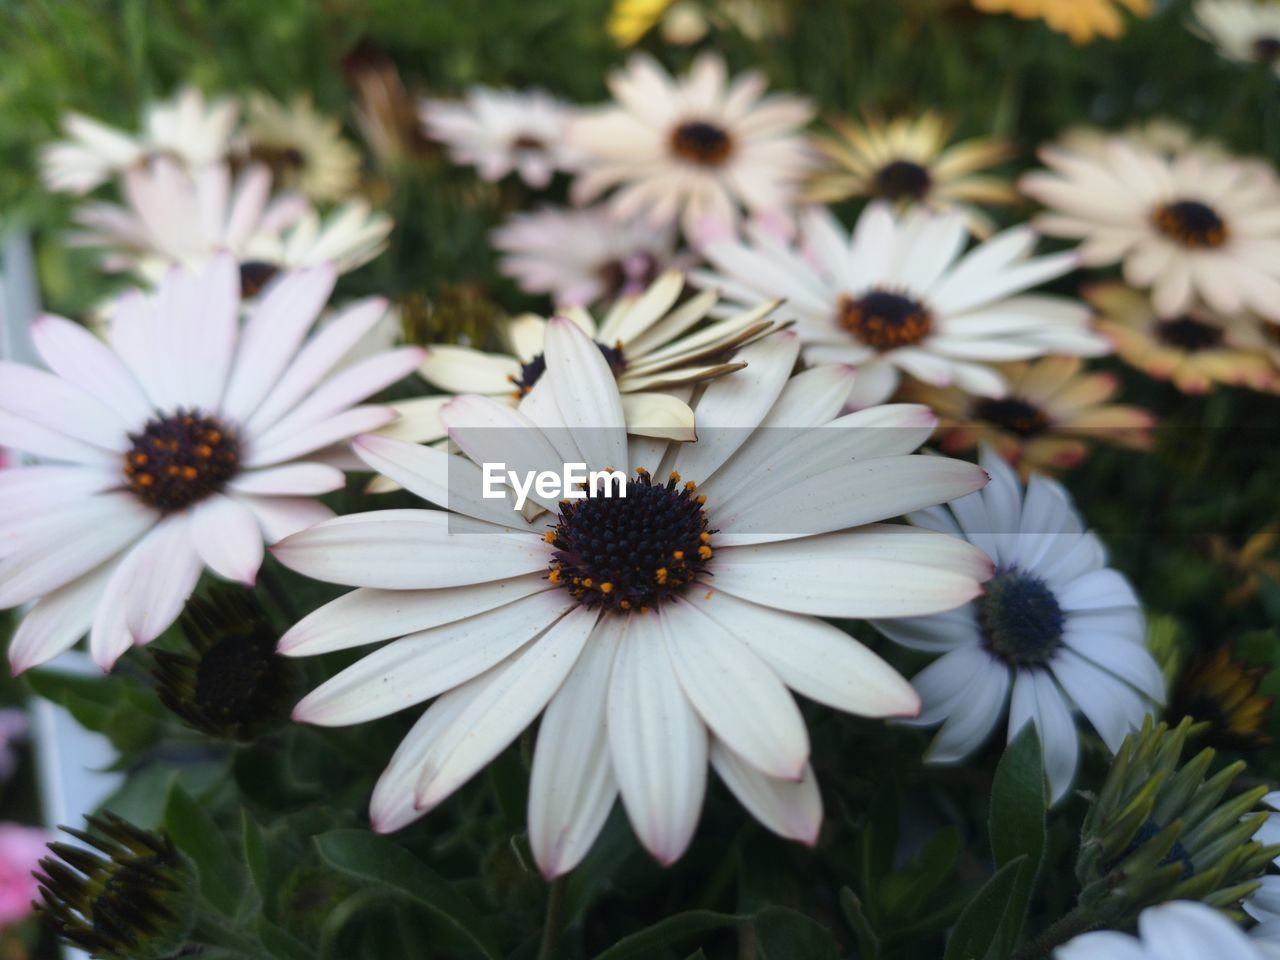 flower, flowering plant, plant, fragility, vulnerability, petal, freshness, growth, flower head, beauty in nature, inflorescence, osteospermum, close-up, white color, nature, focus on foreground, no people, pollen, day, daisy